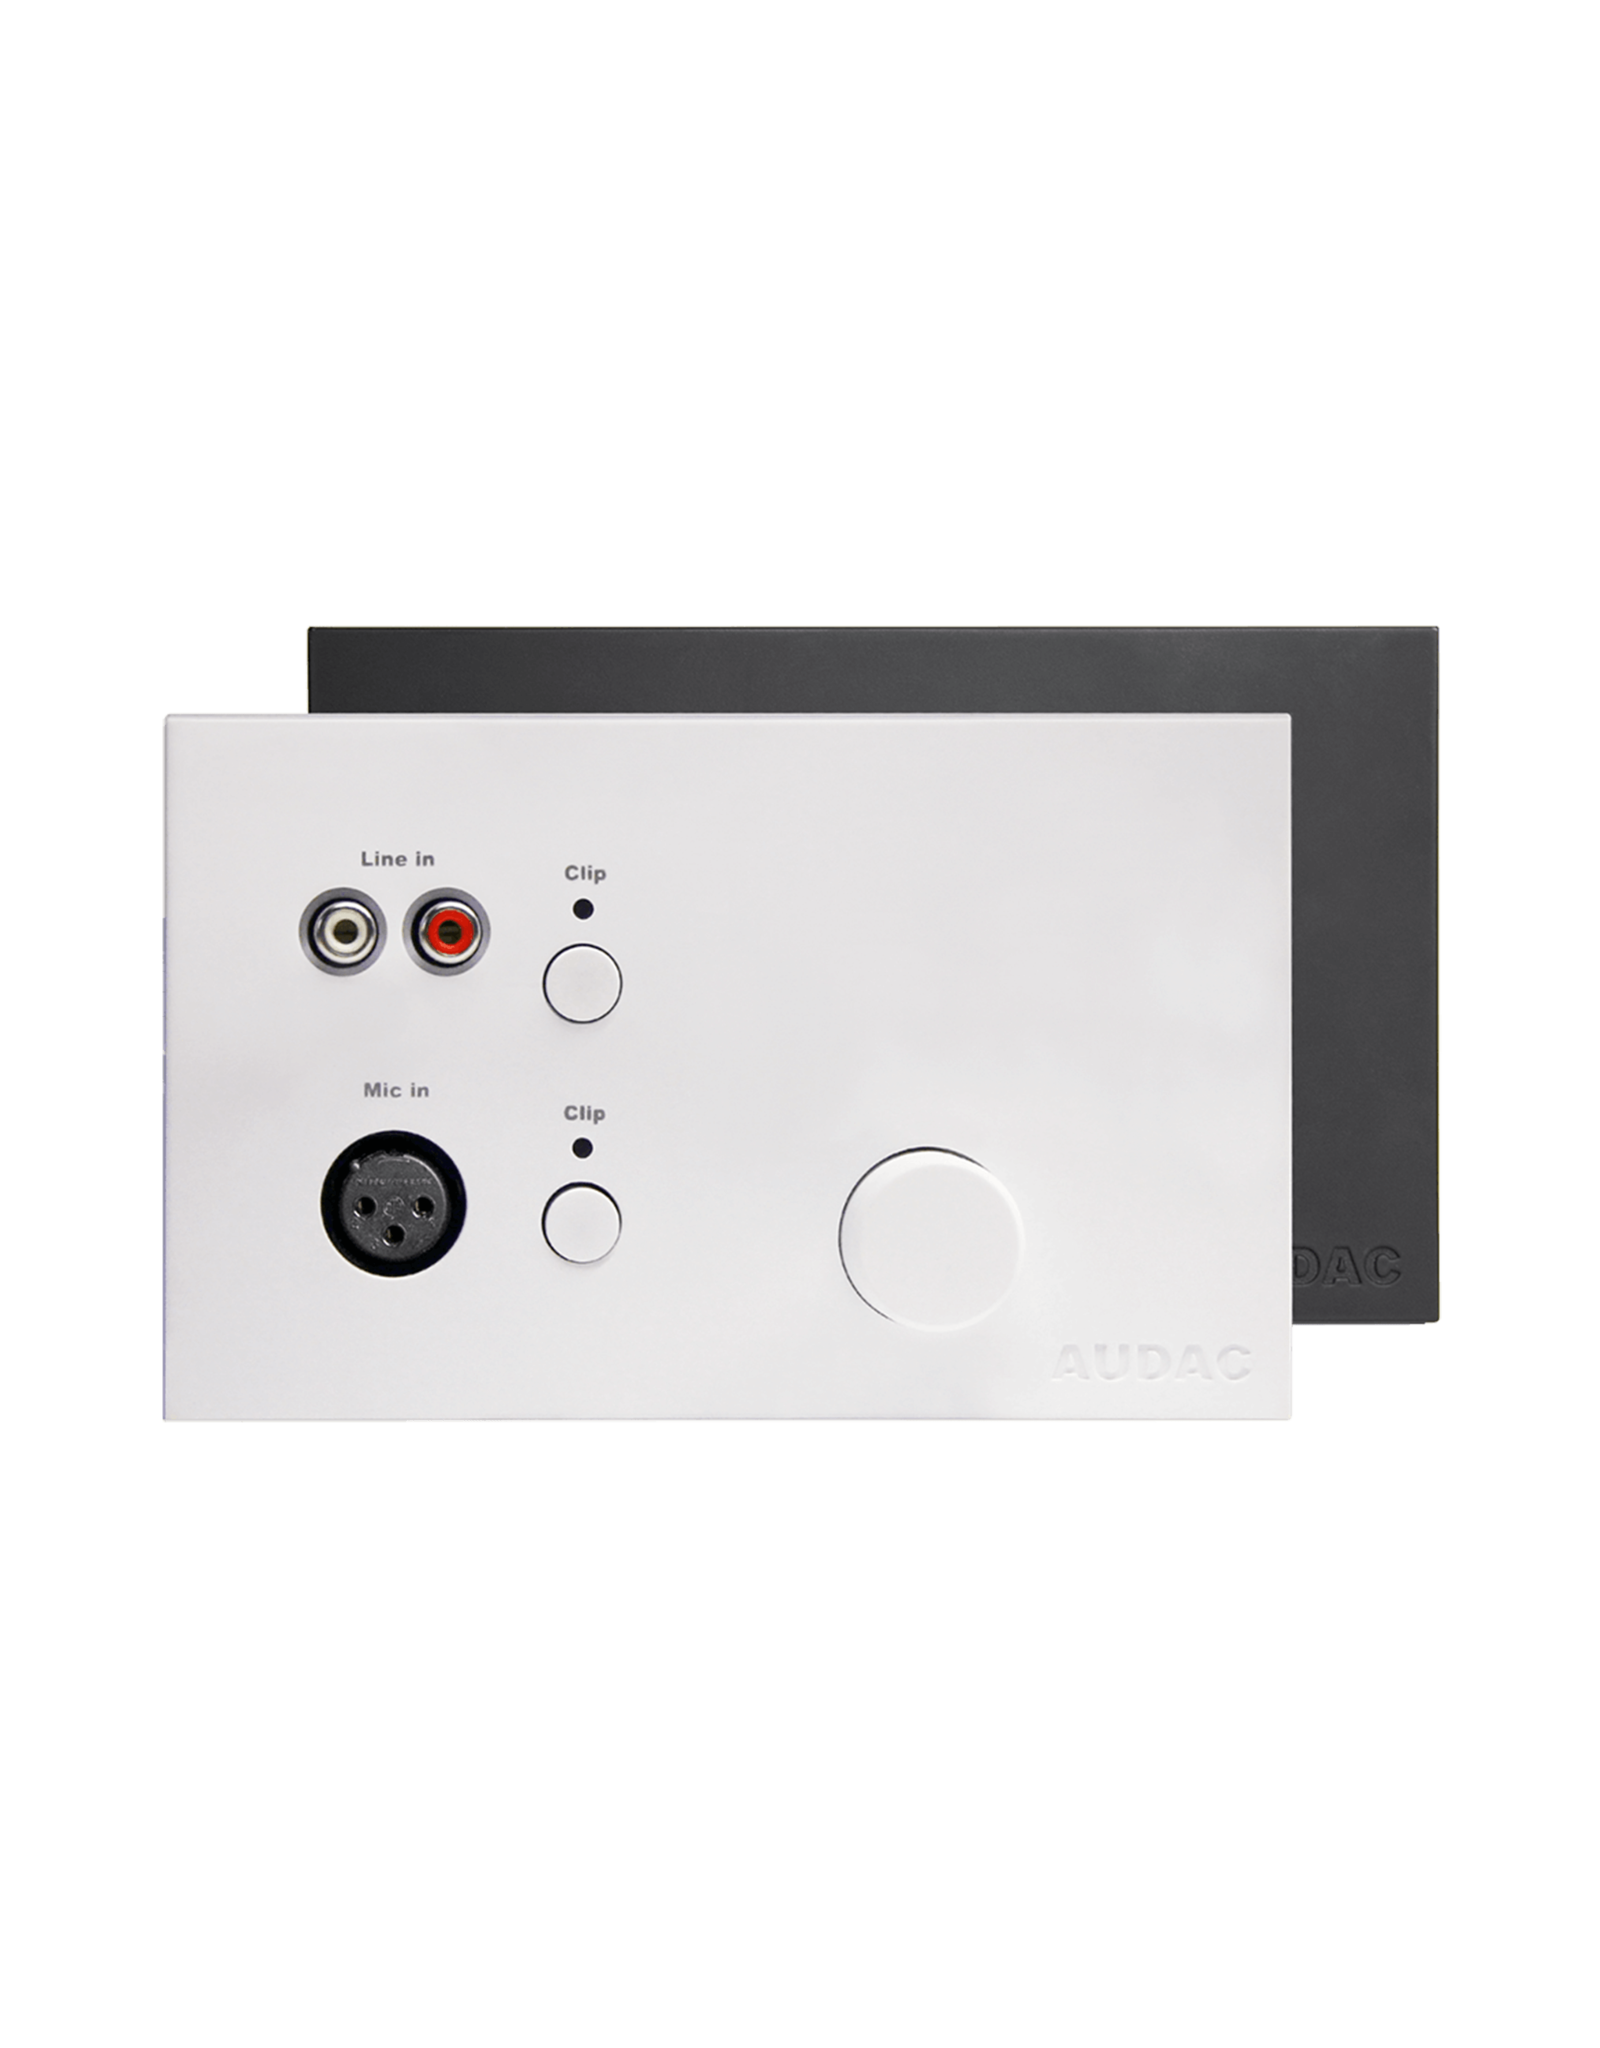 Audac Remote wall mixer for LX523 White version